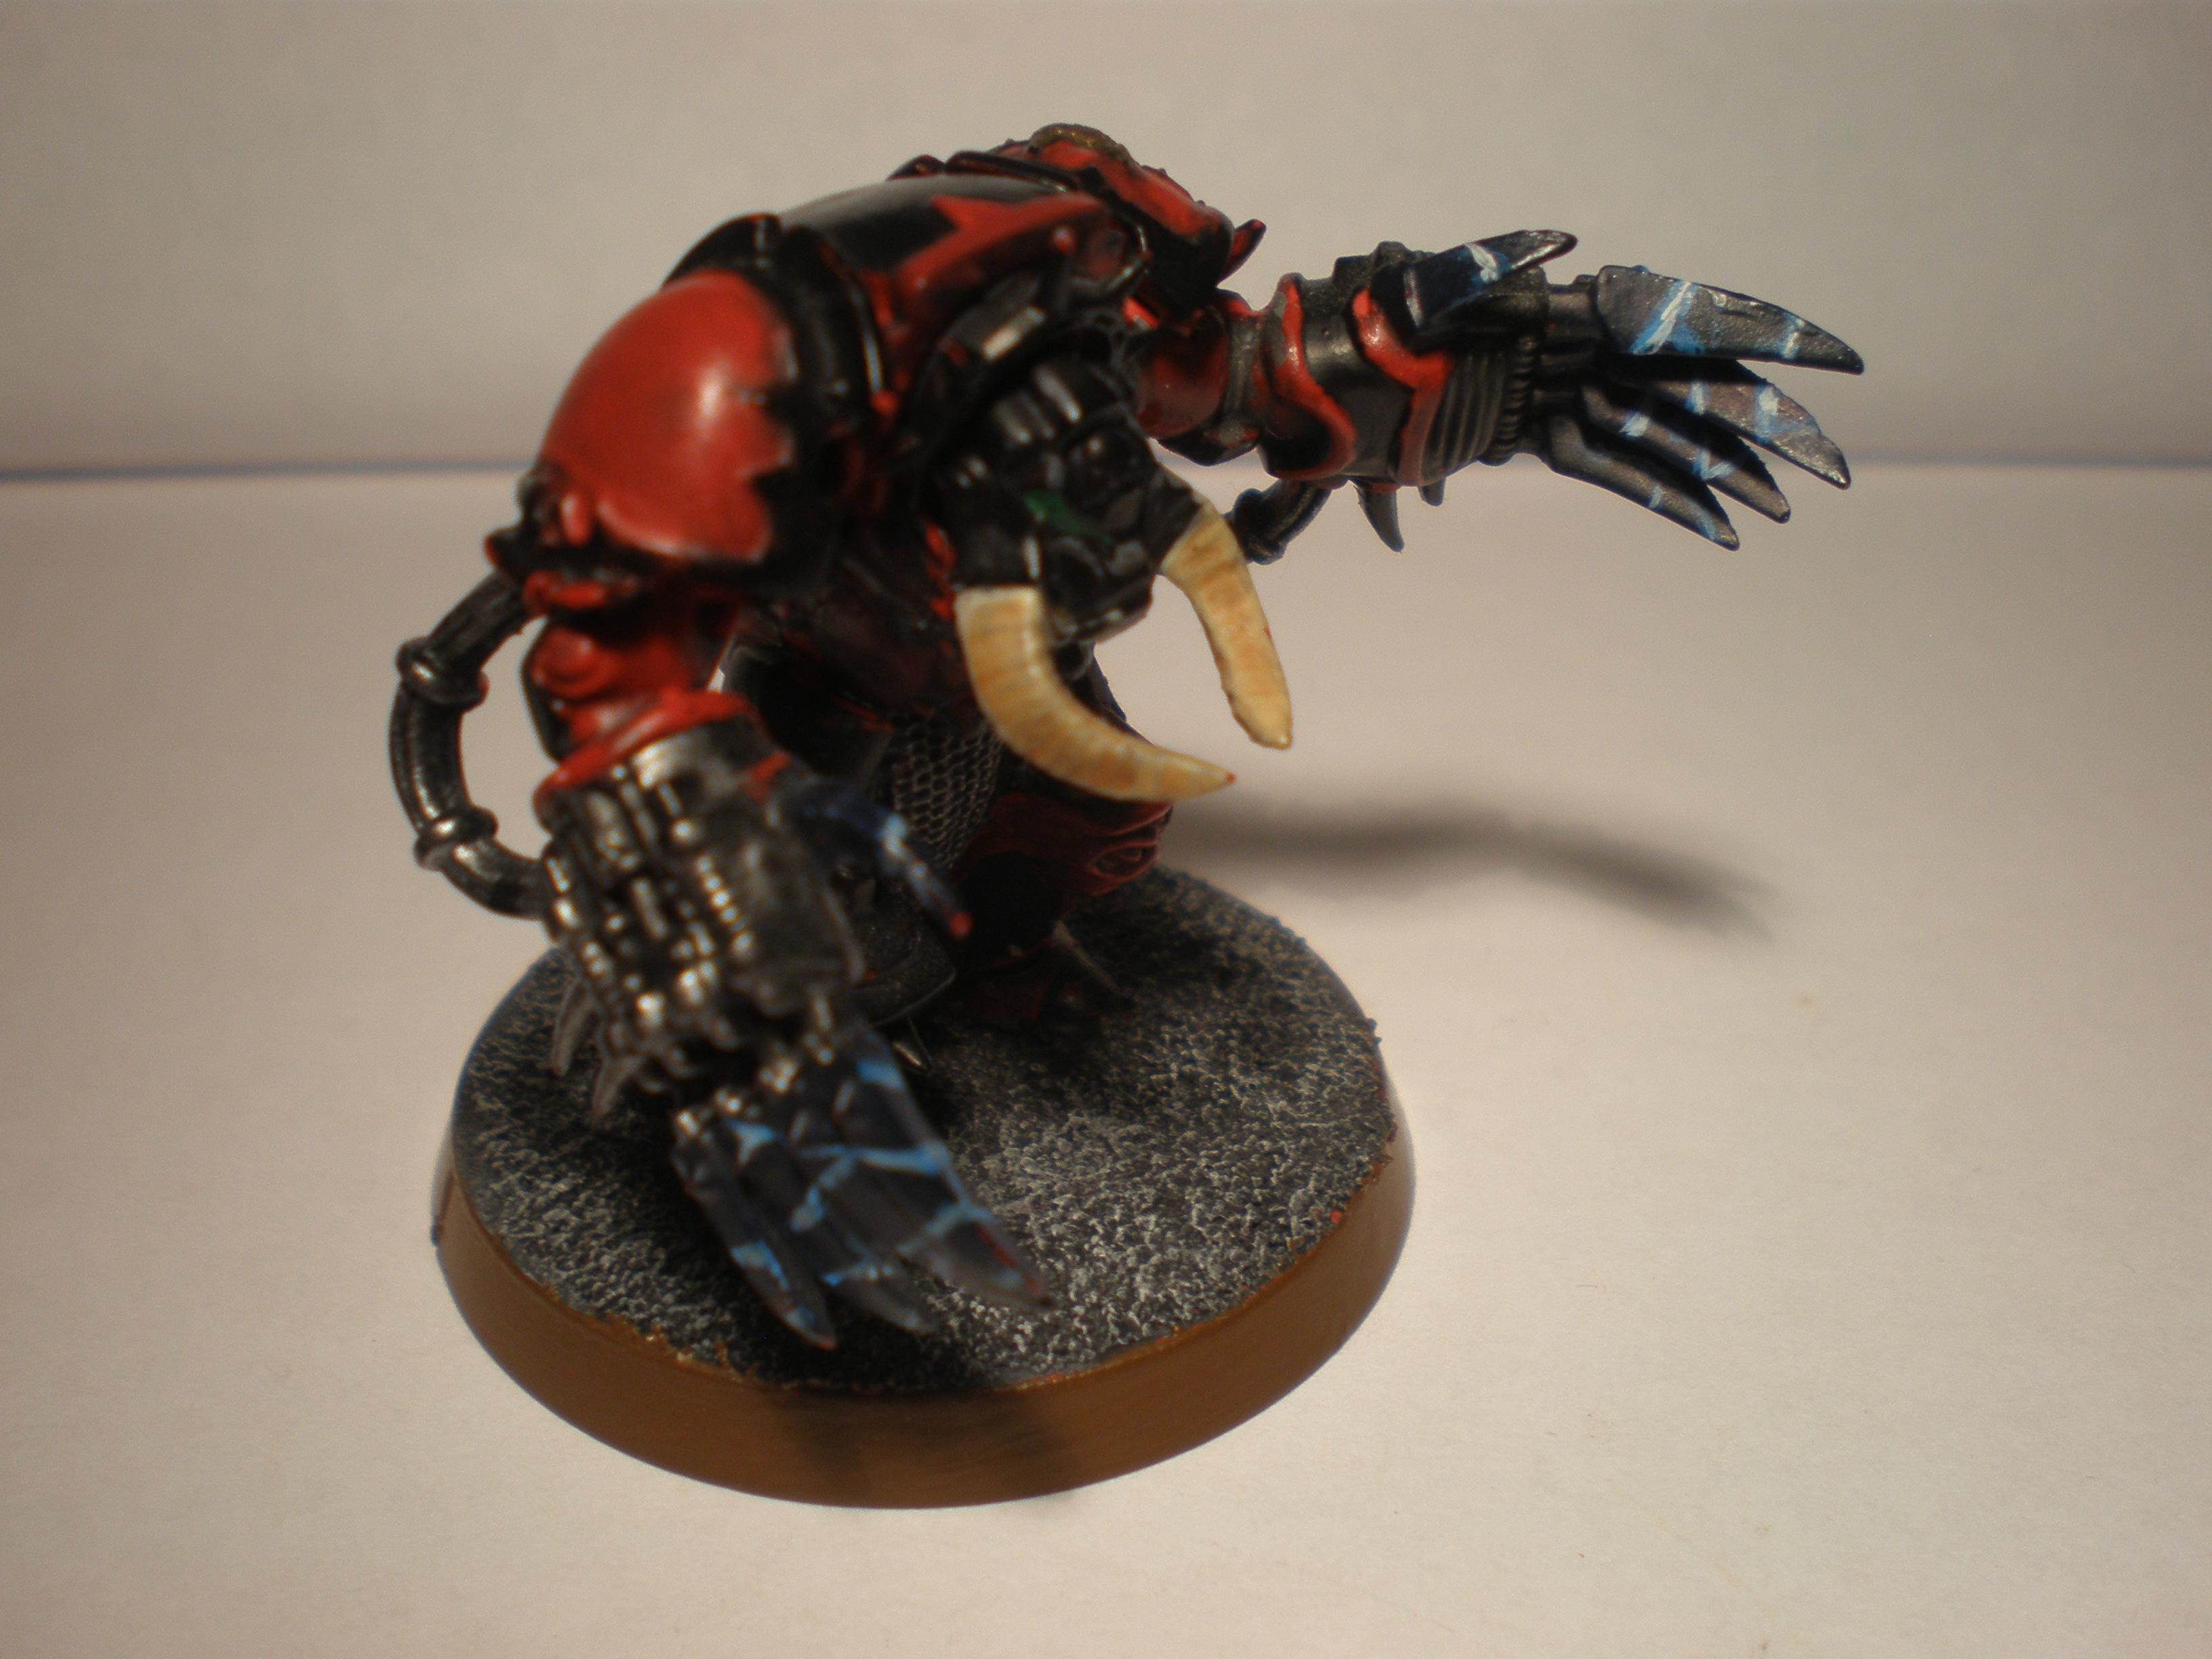 Its my first attempt at painting lightning effects